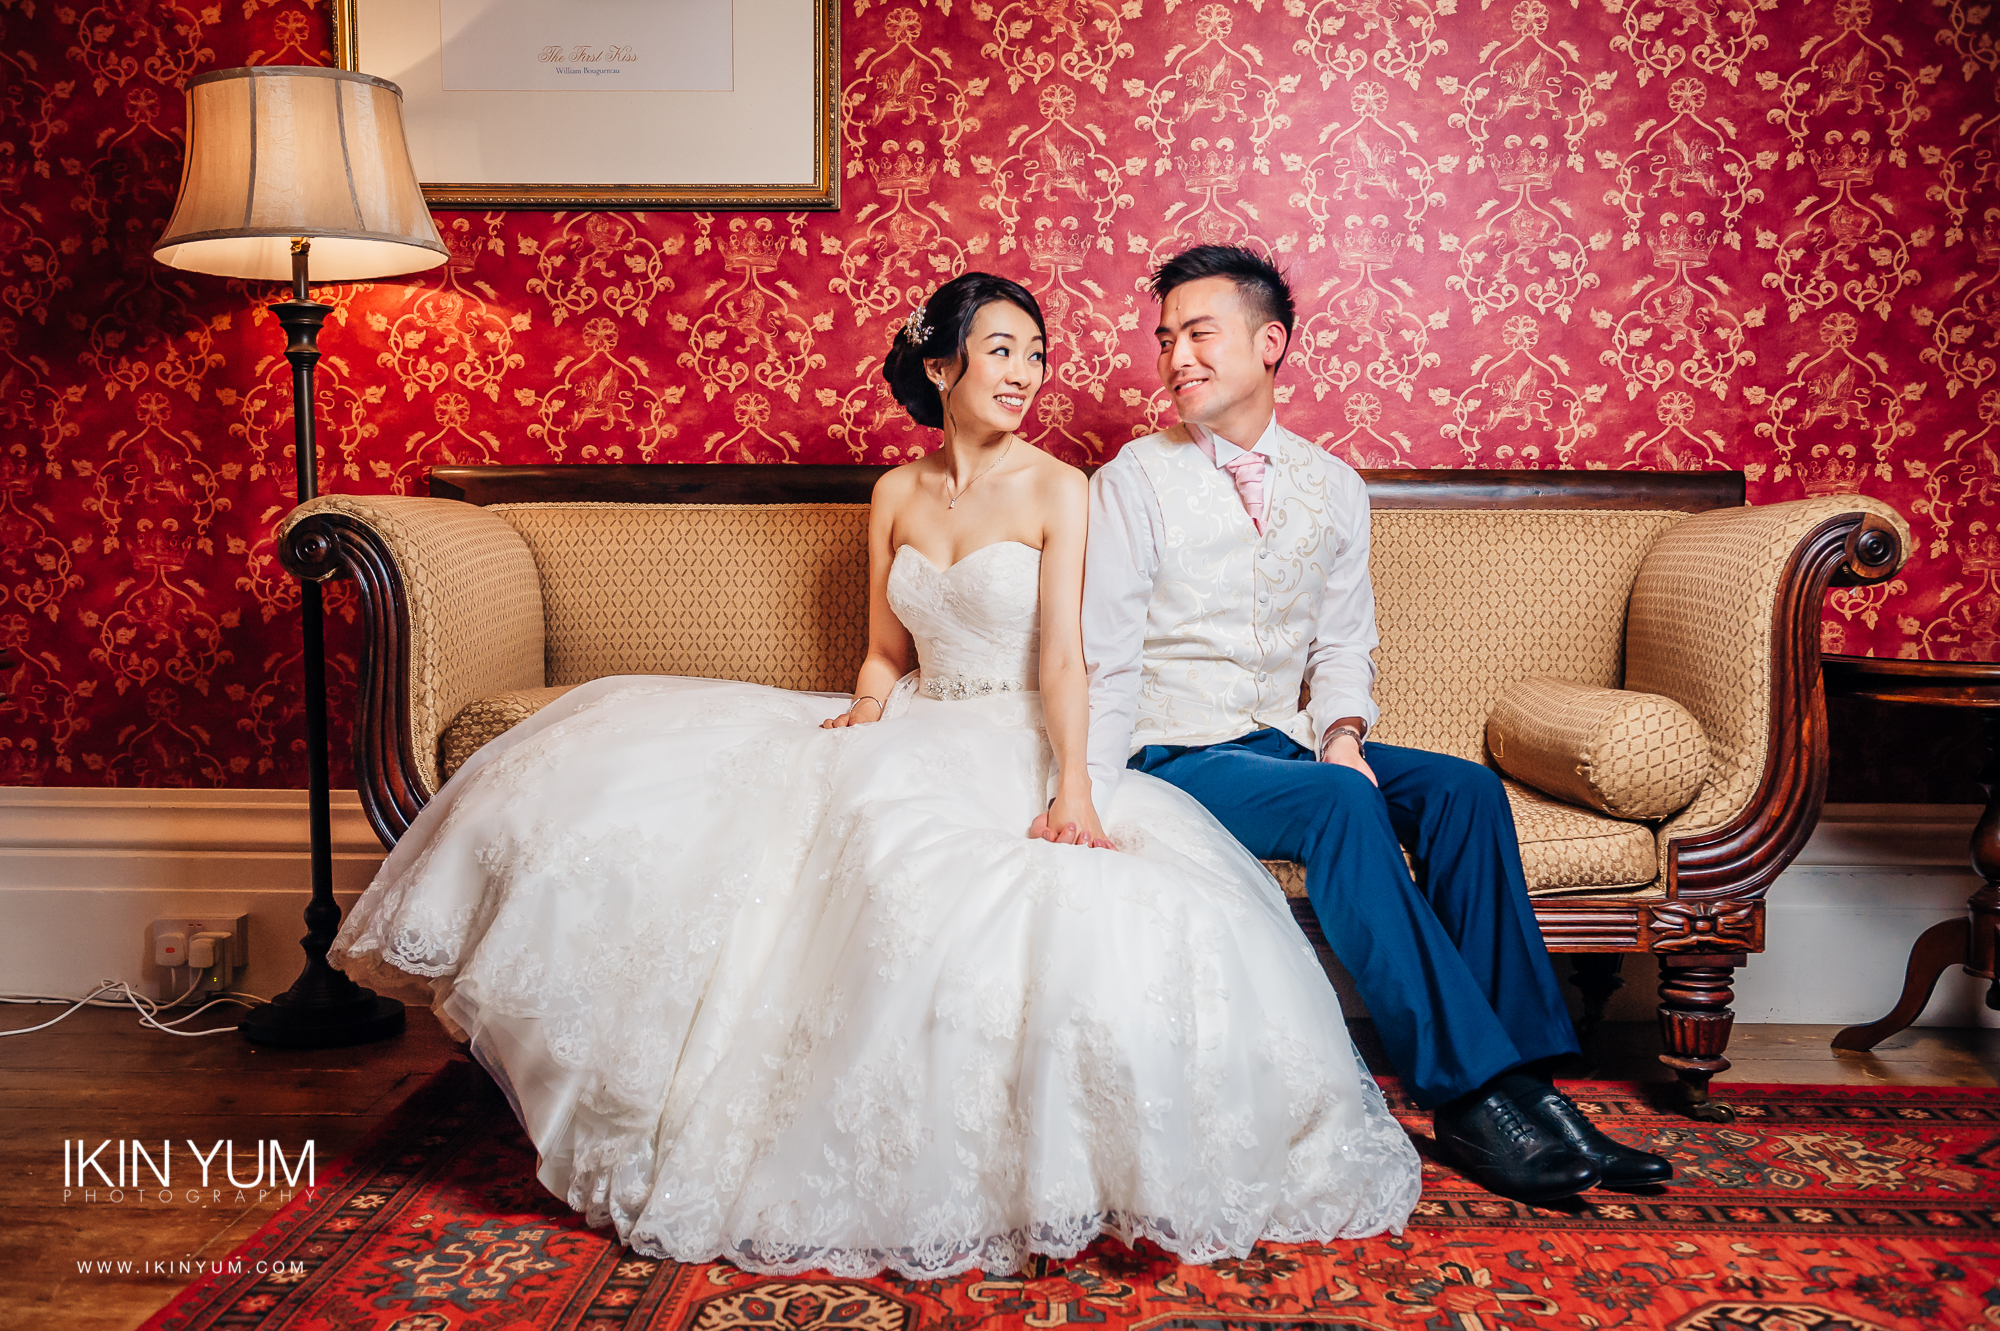 Sylvianne & Chun Wedding Day - Ikin Yum Photography-131.jpg